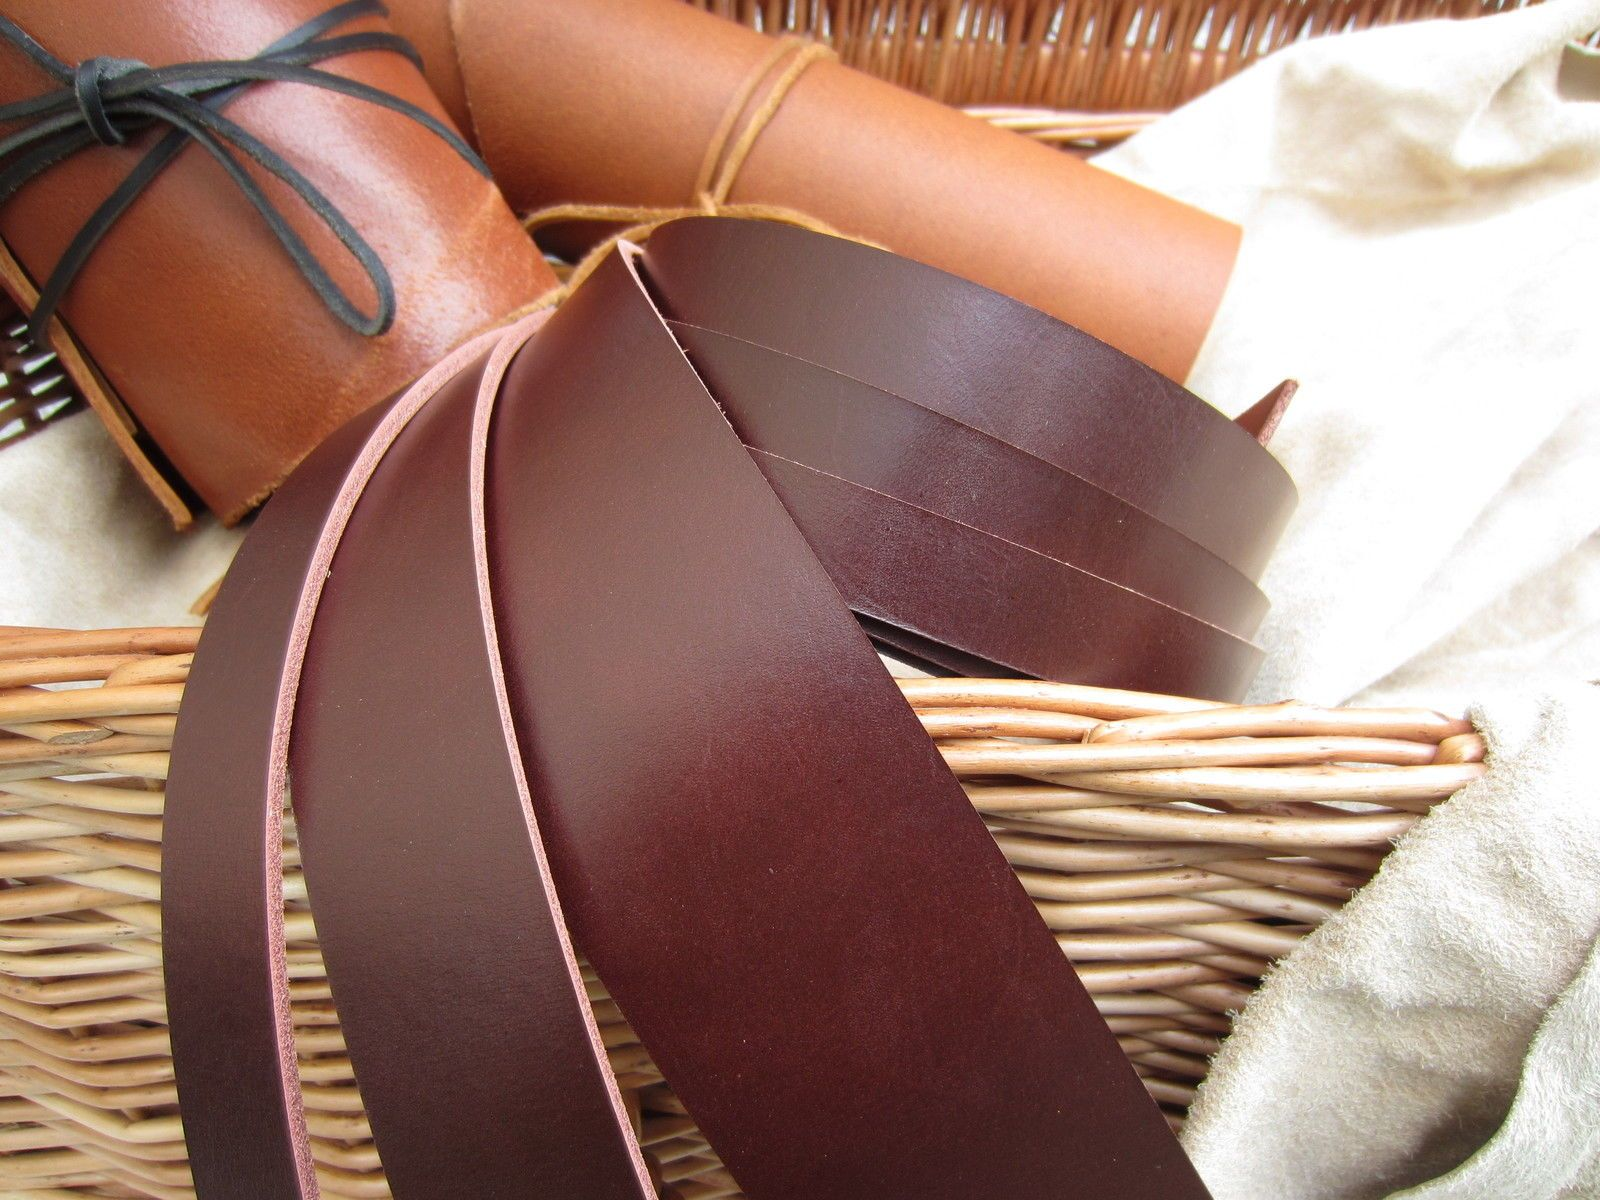 "50"" LONG HAVANA BROWN 3mm THICK BRIDLE BUTT LEATHER STRAP VEG TAN VARIOUS WIDTH 